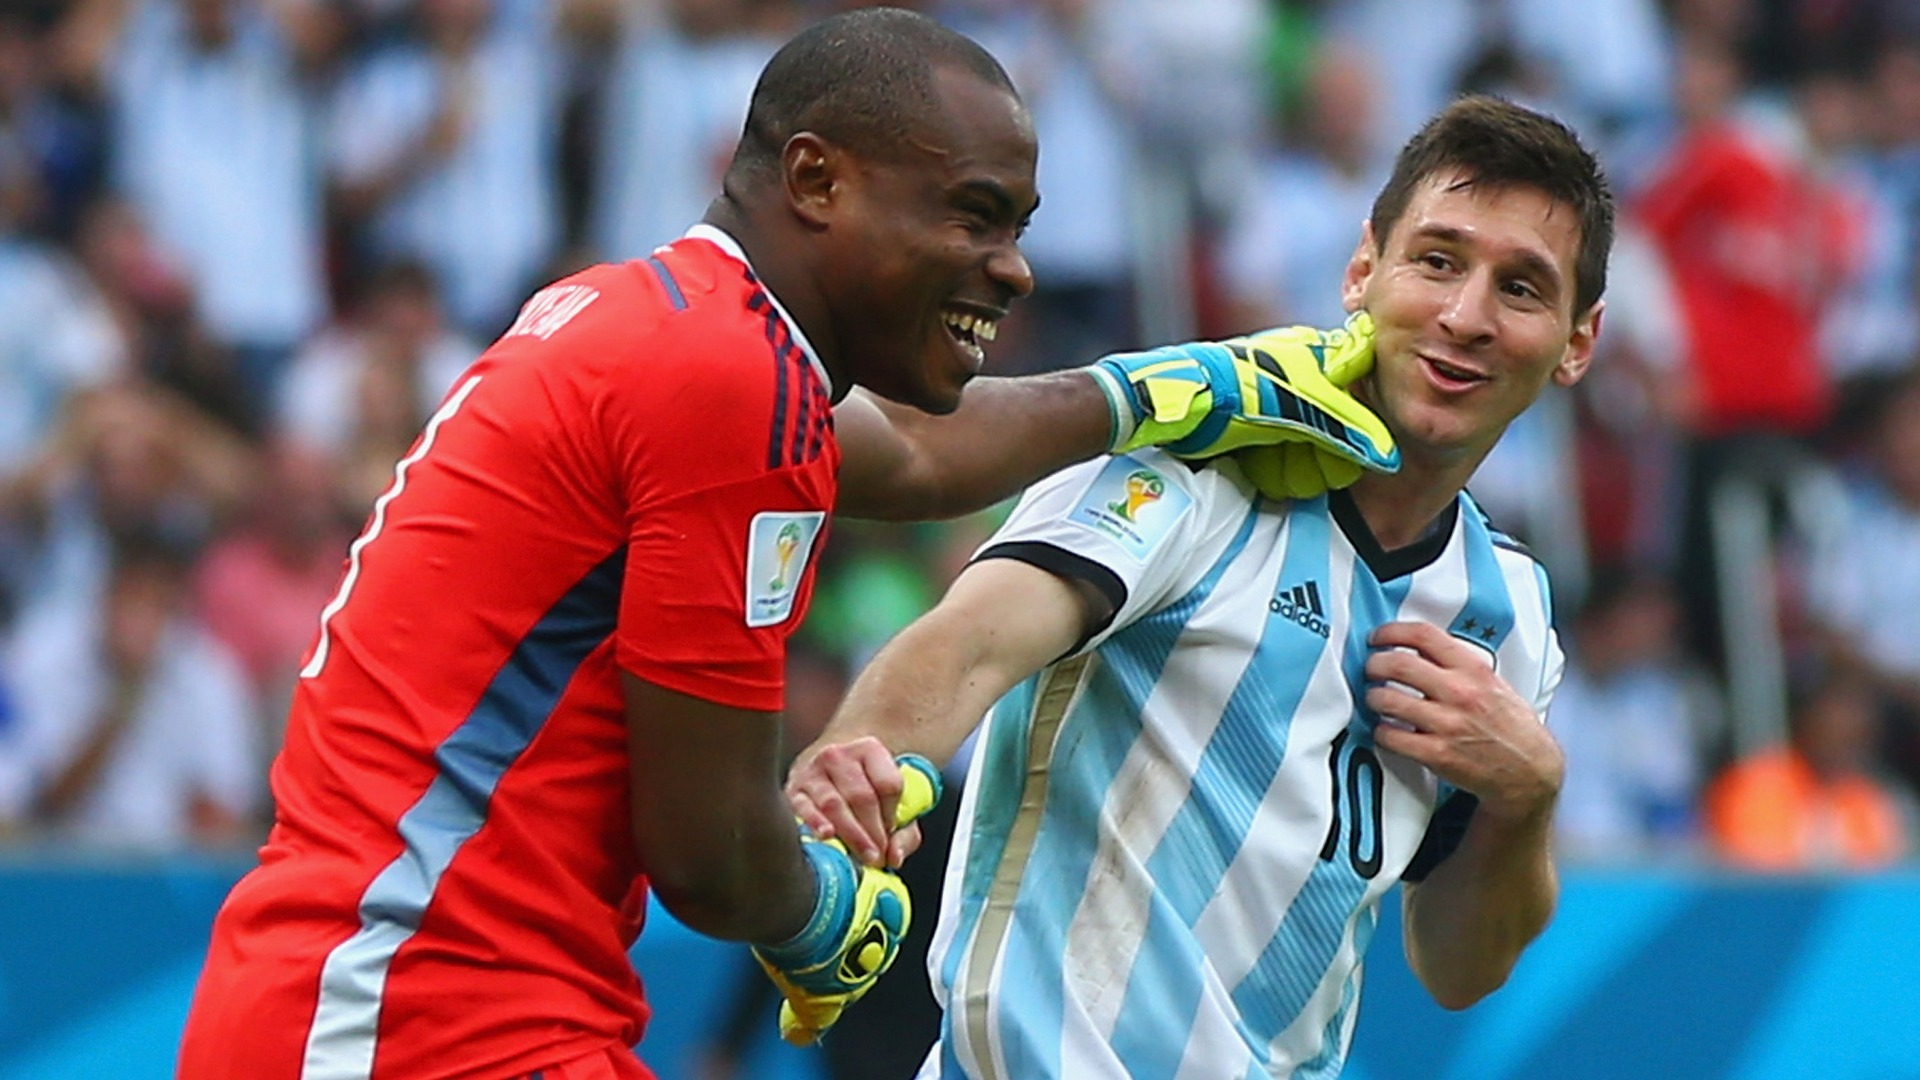 Argentina vs Nigeria: how and where to watch